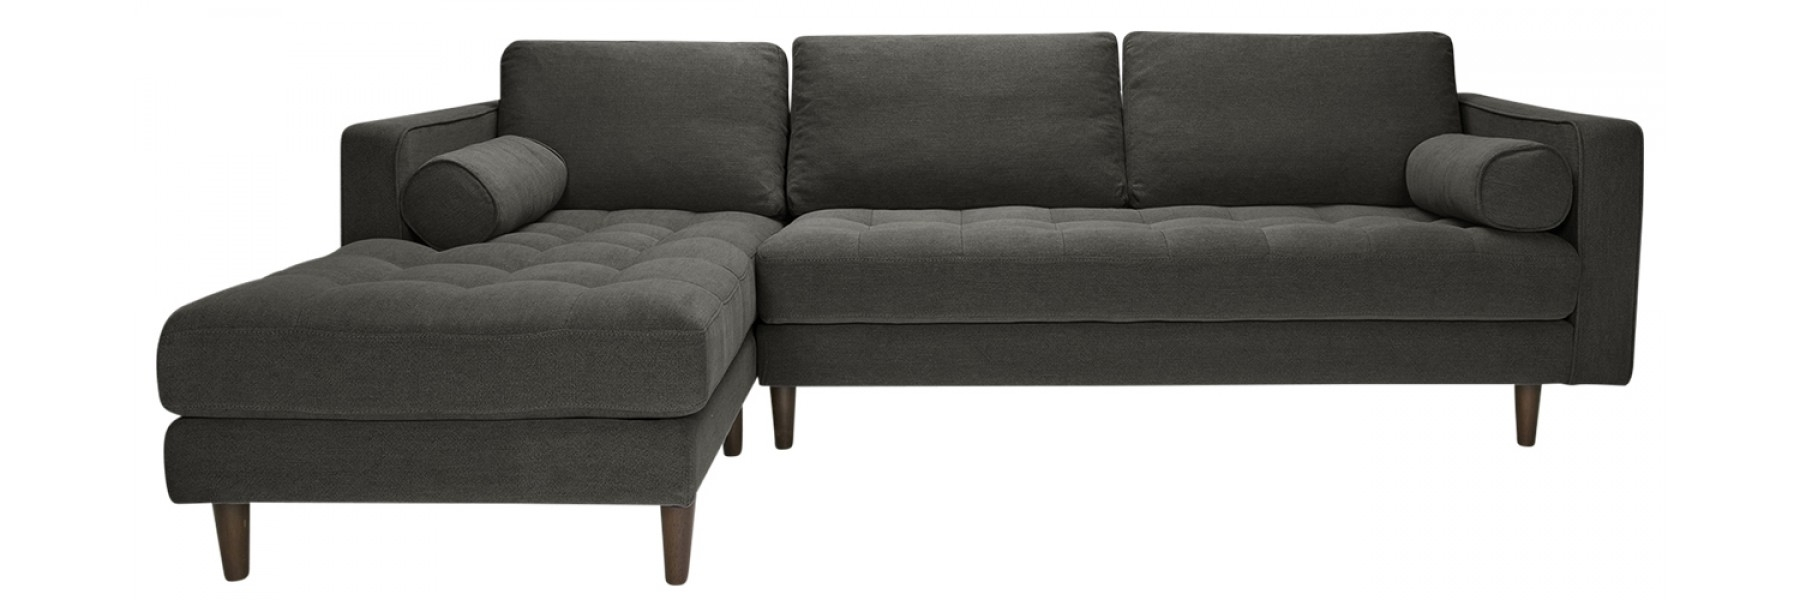 Sawyer Laf Sectional Stoned Slate With Nico Grey Sectionals With Left Facing Storage Chaise (View 3 of 25)